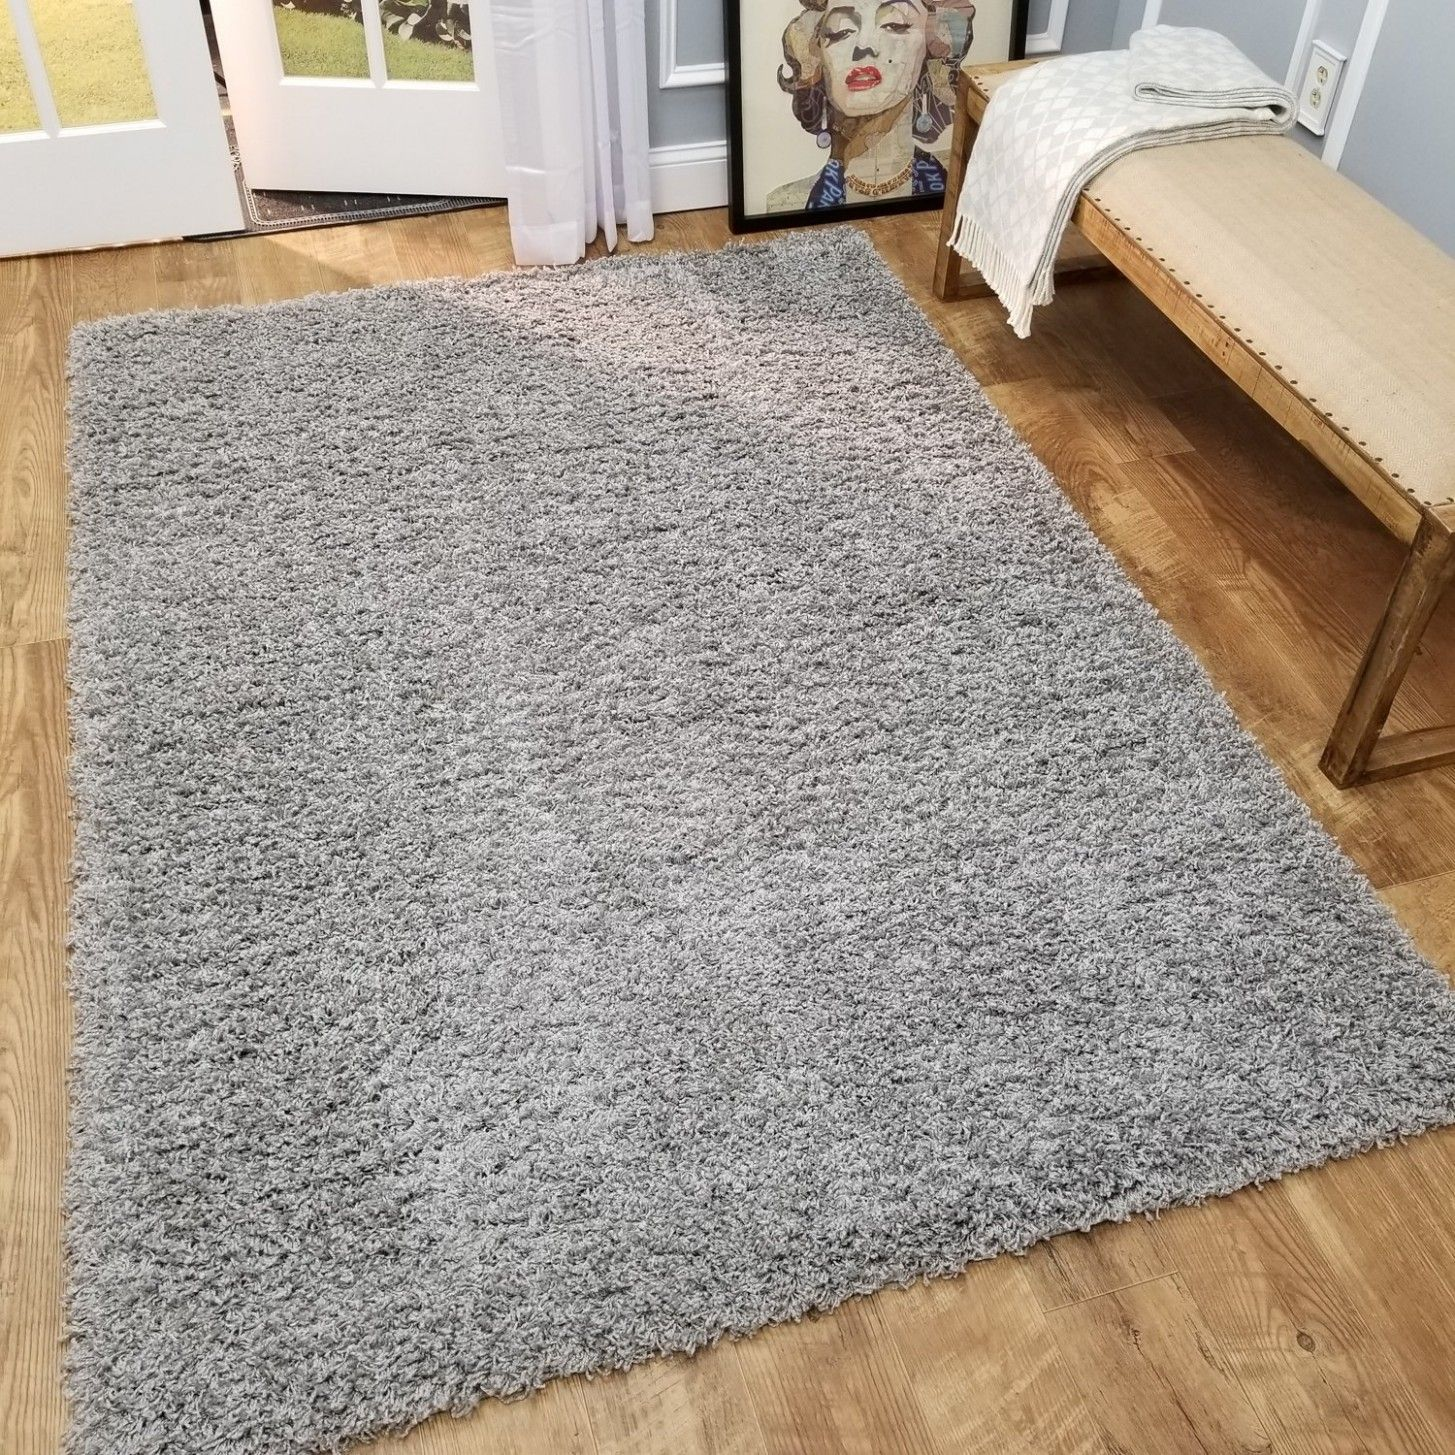 Living Rooms With Grey Carpet In 2020 Gray Shag Area Rug Shag Area Rug Grey Carpet